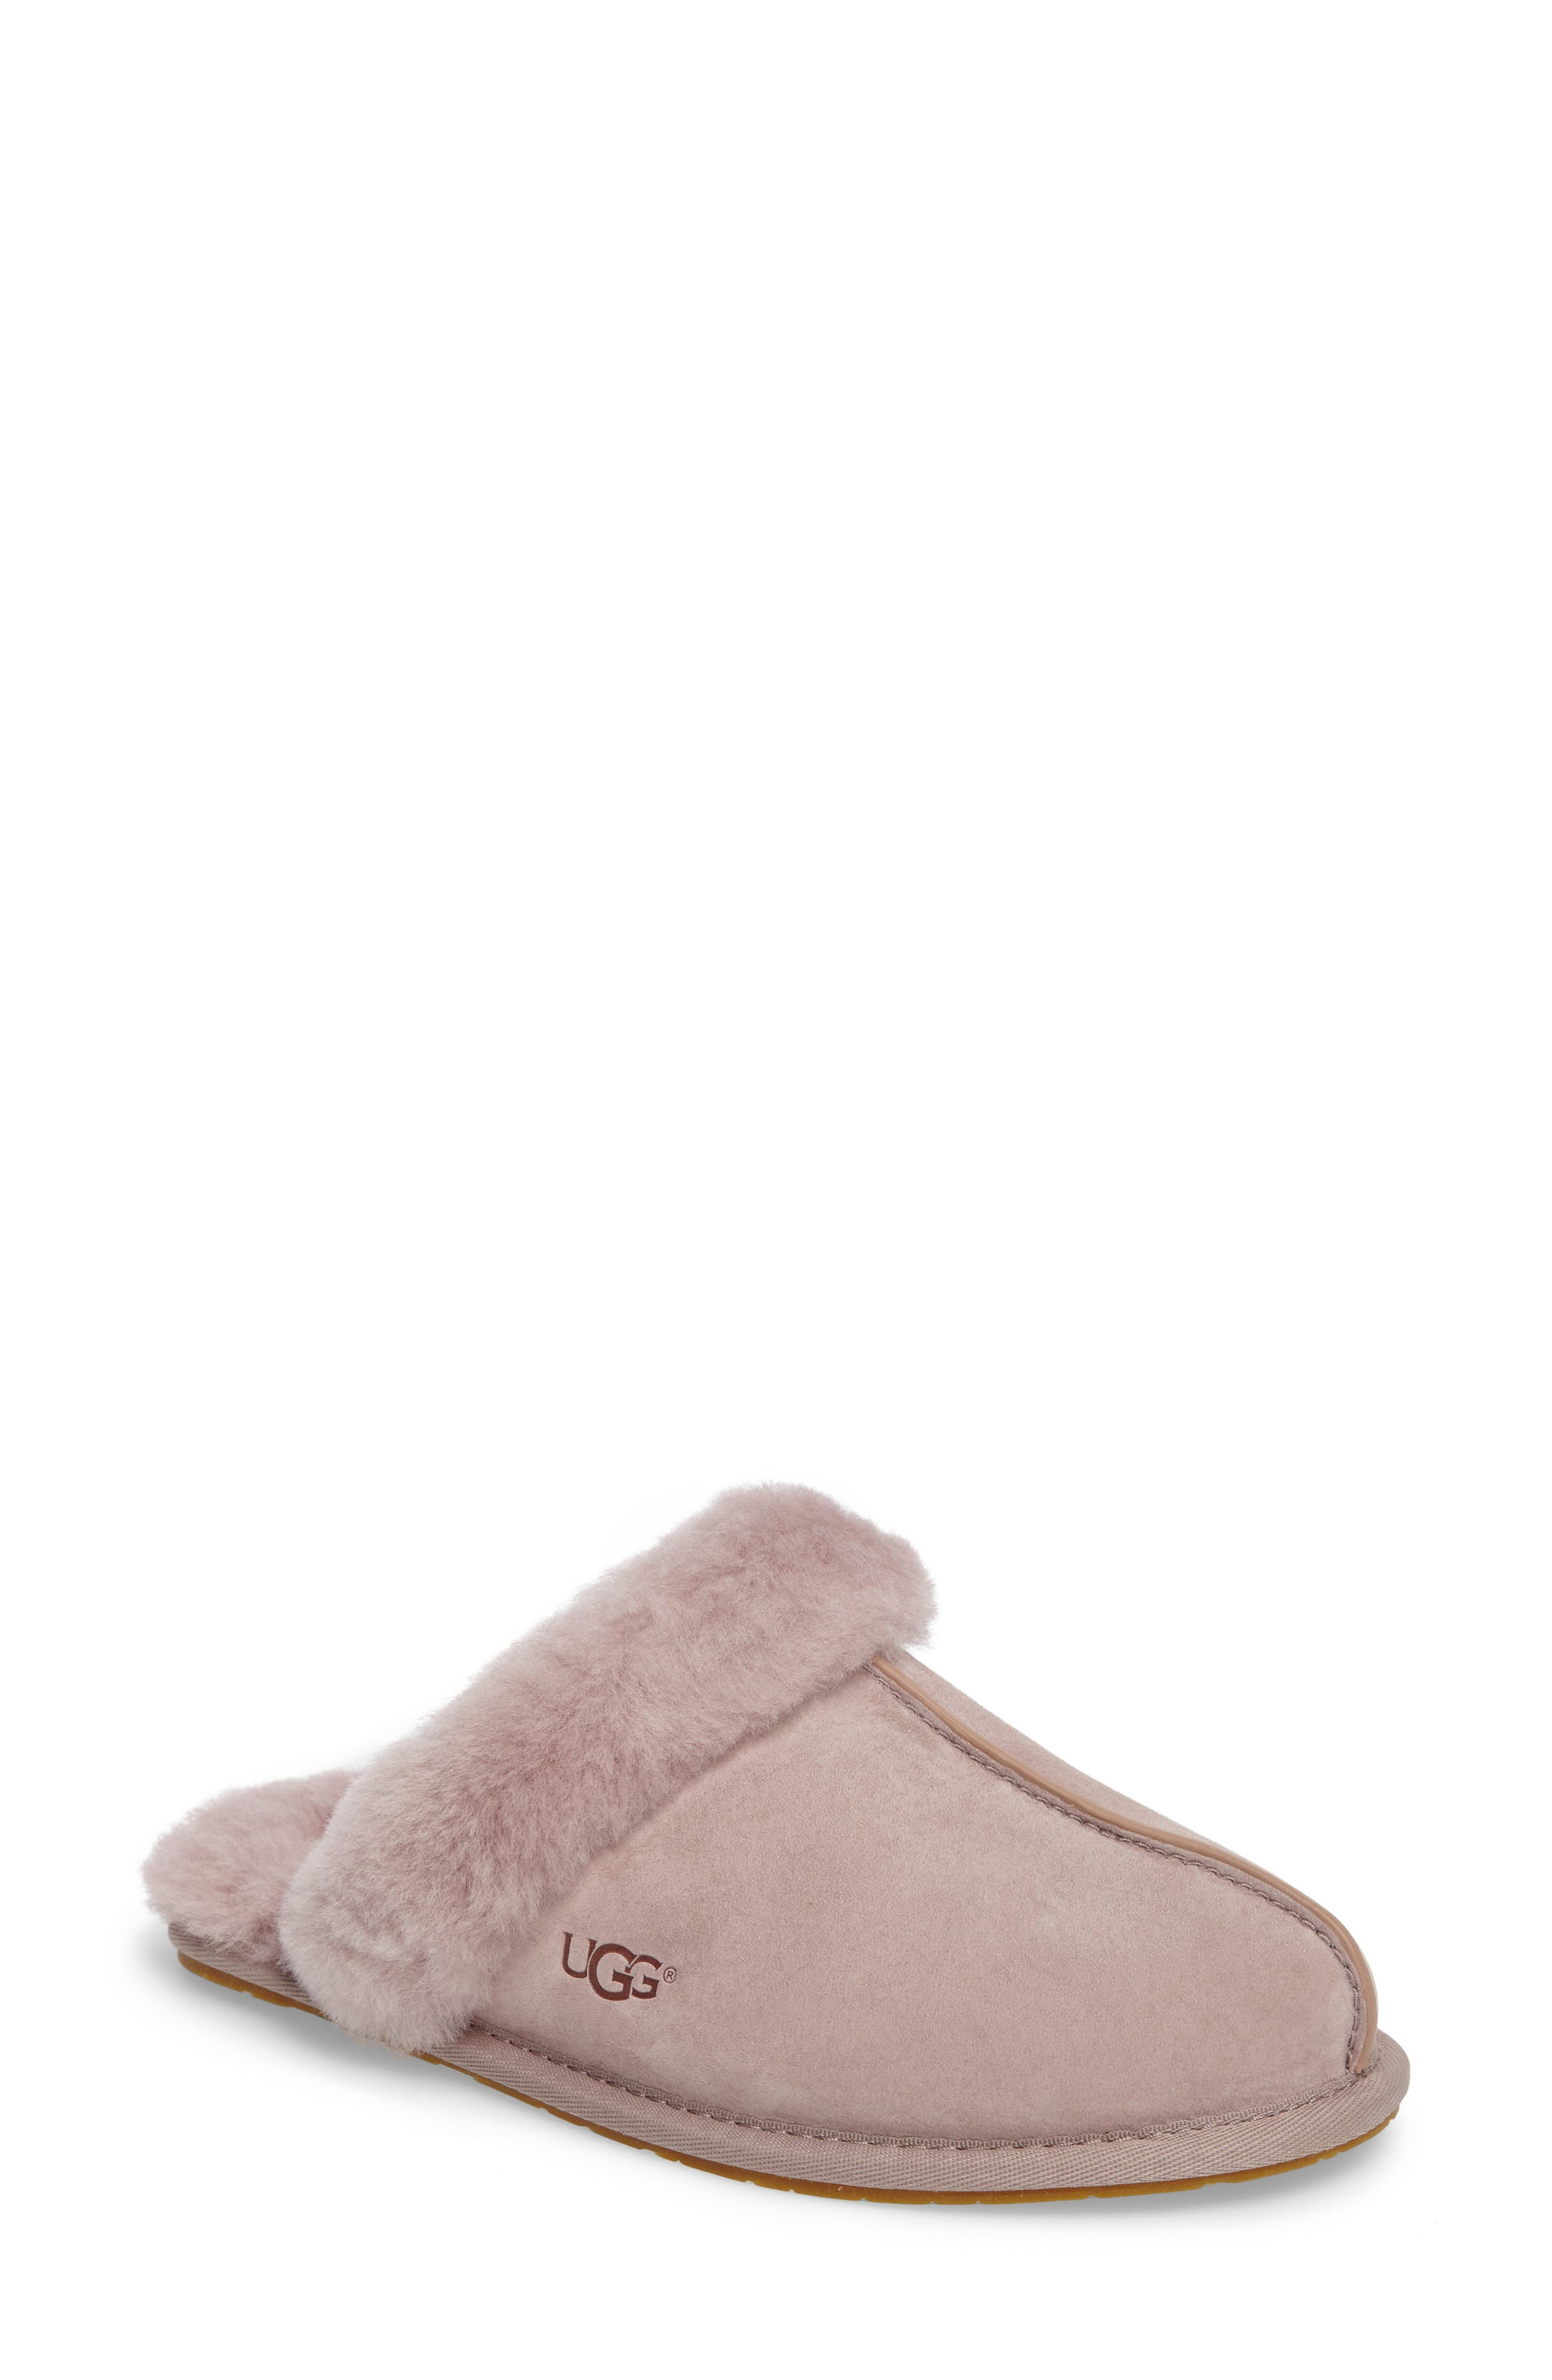 ugg clabic outlet 5225\\\' AND SLEEP(3) oRDeR BY 561